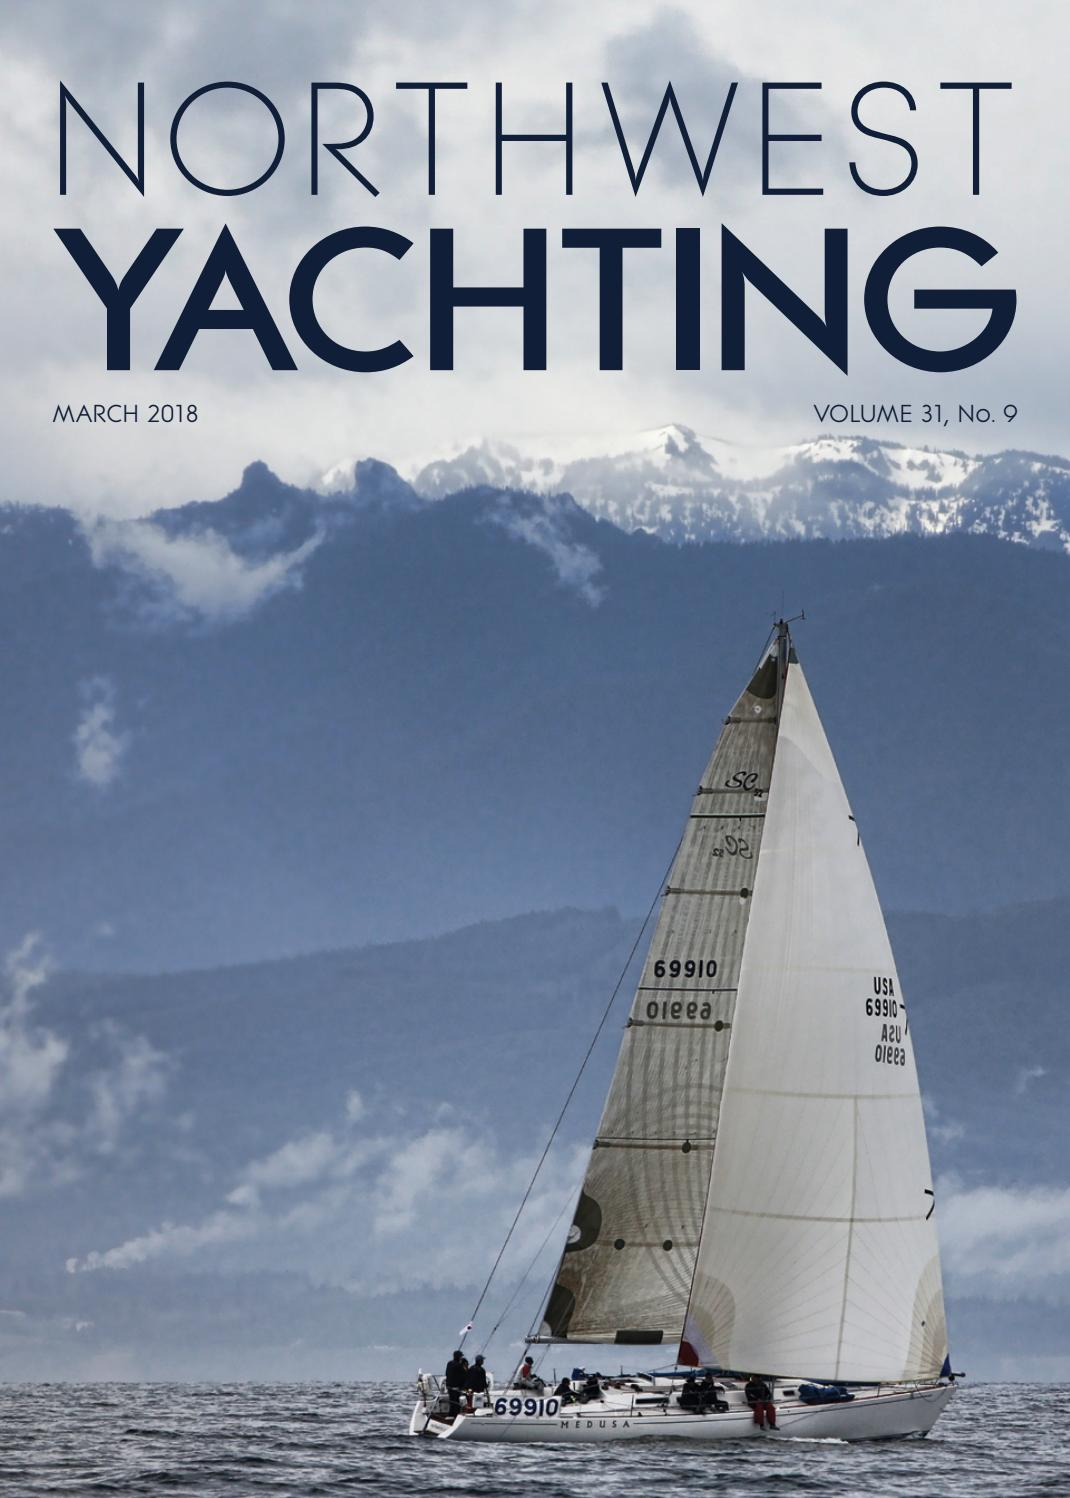 Nw Yachting March 2018 By Northwest Issuu Snap Circuits Pro Educational 500 Exp With Deluxe Case Available At